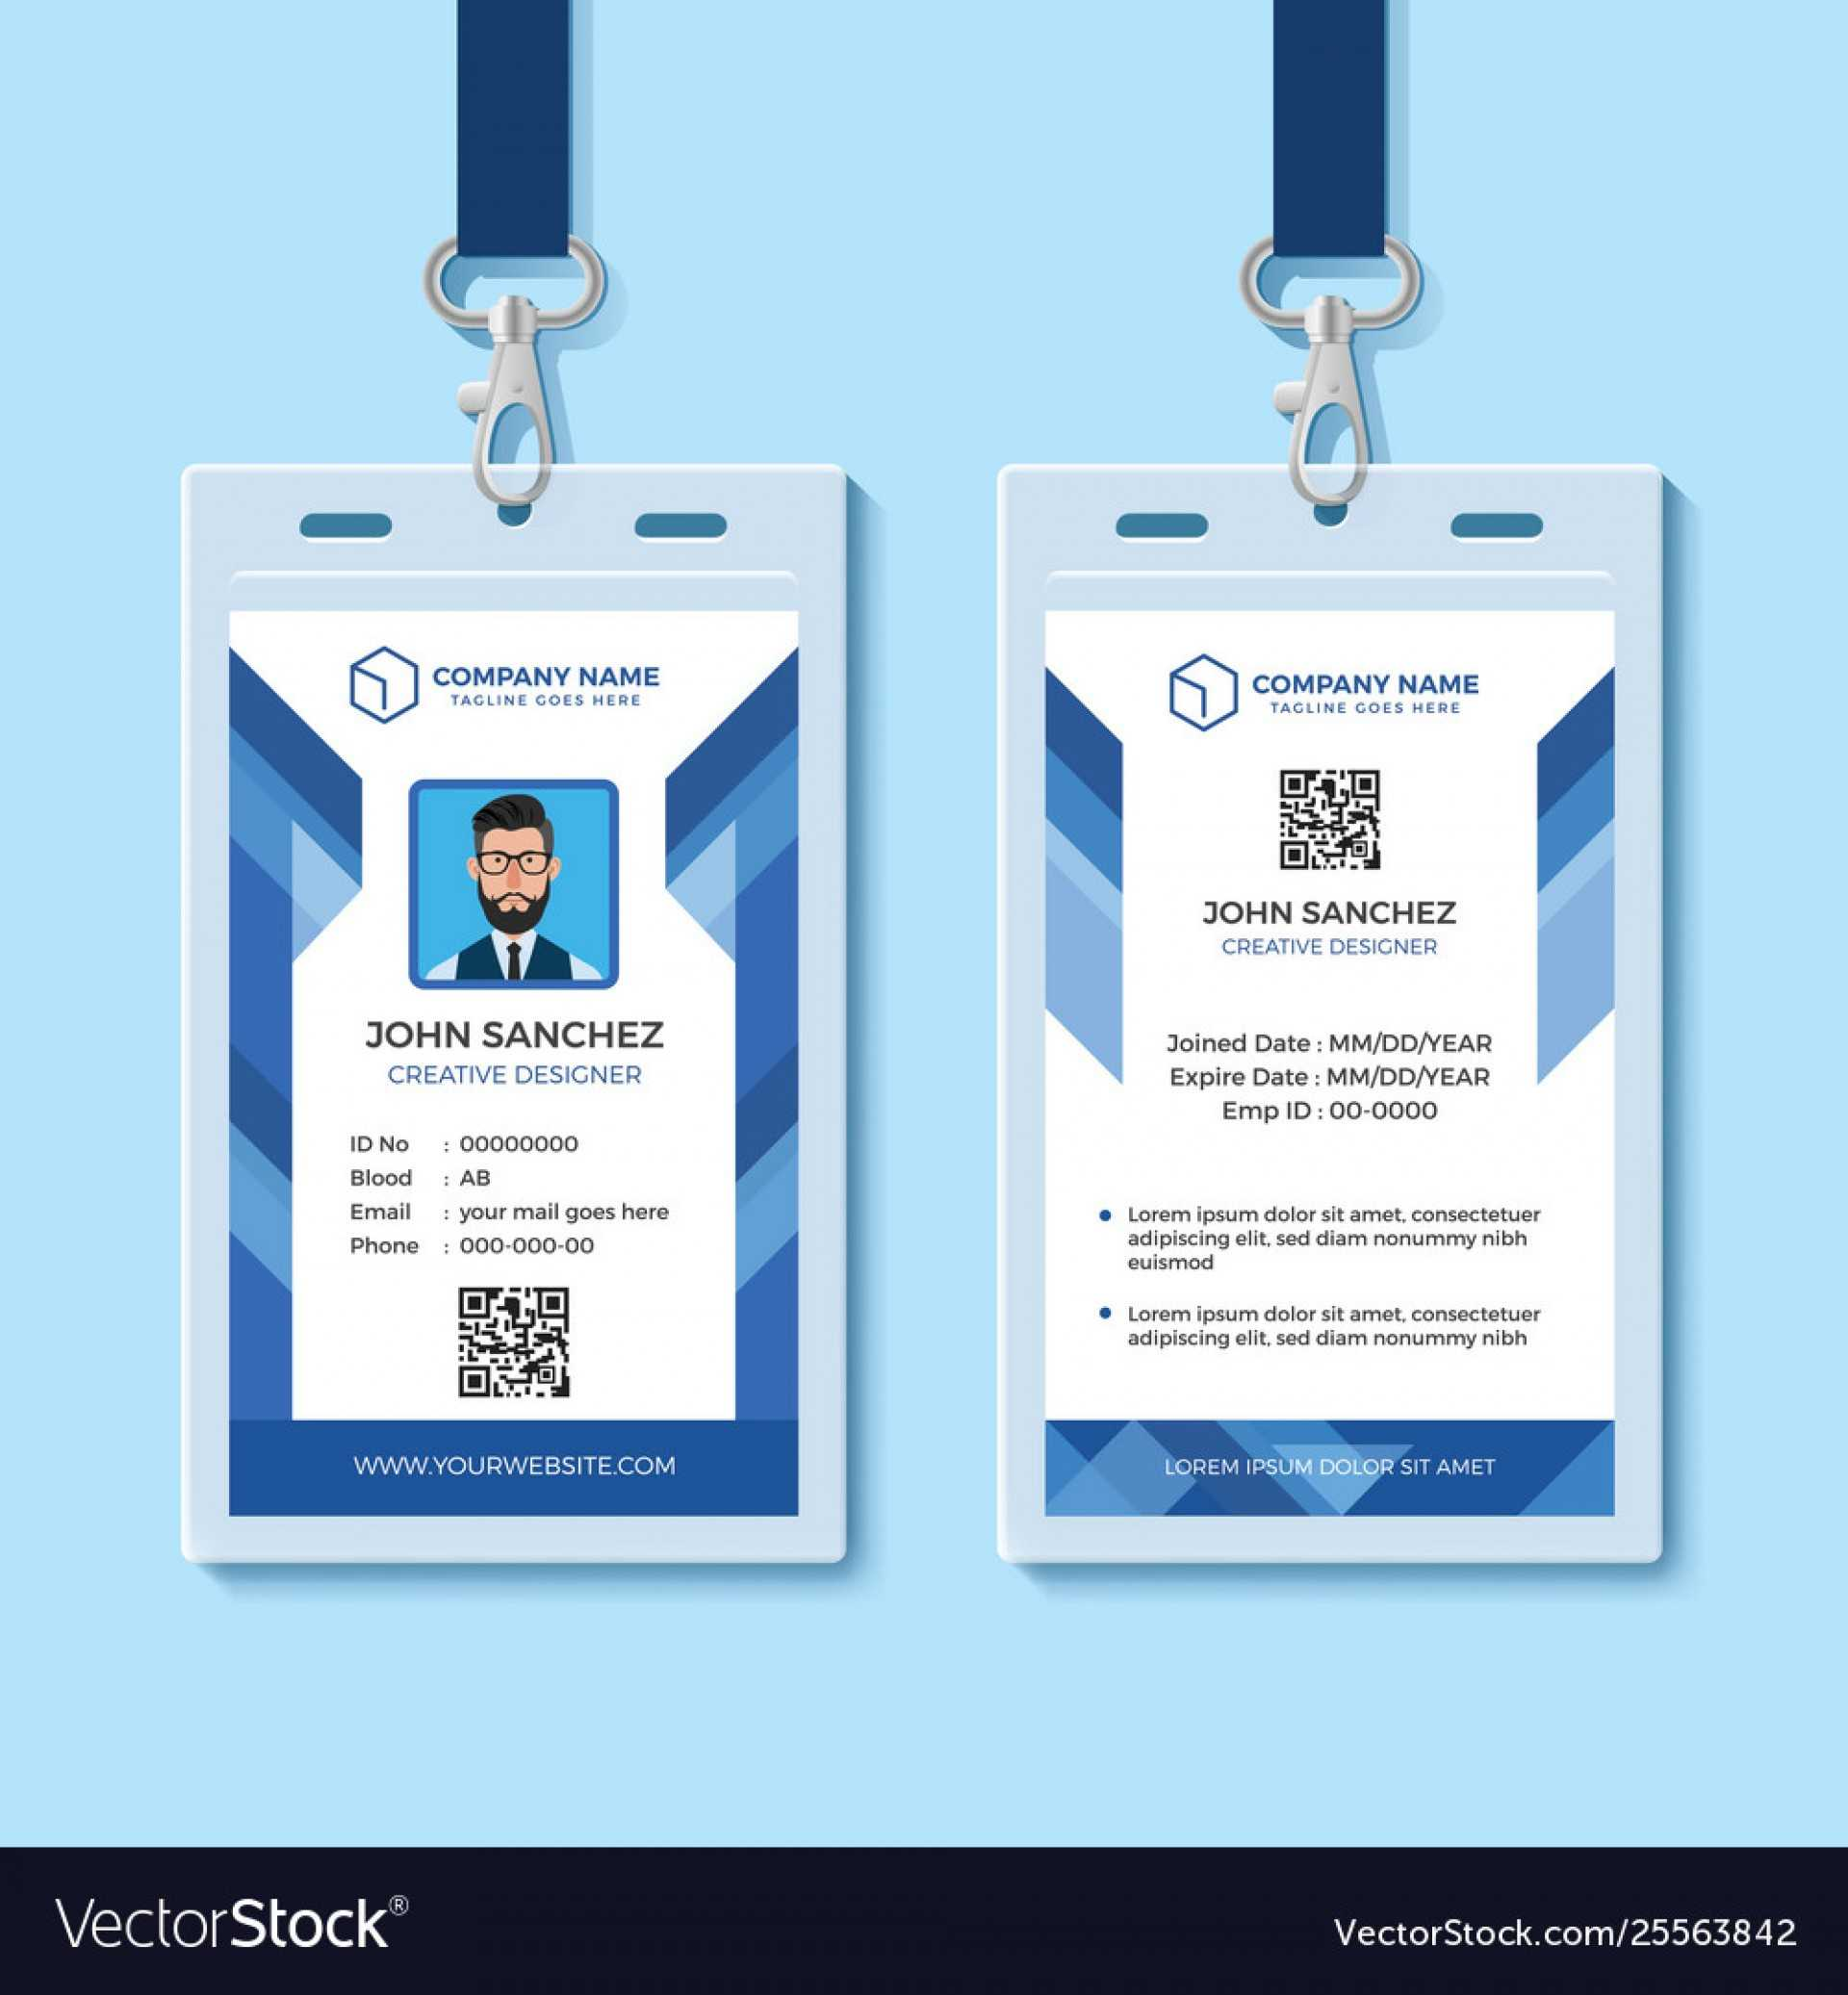 025 Template Ideas Employee Id Card Templates Blue Design With Employee Card Template Word